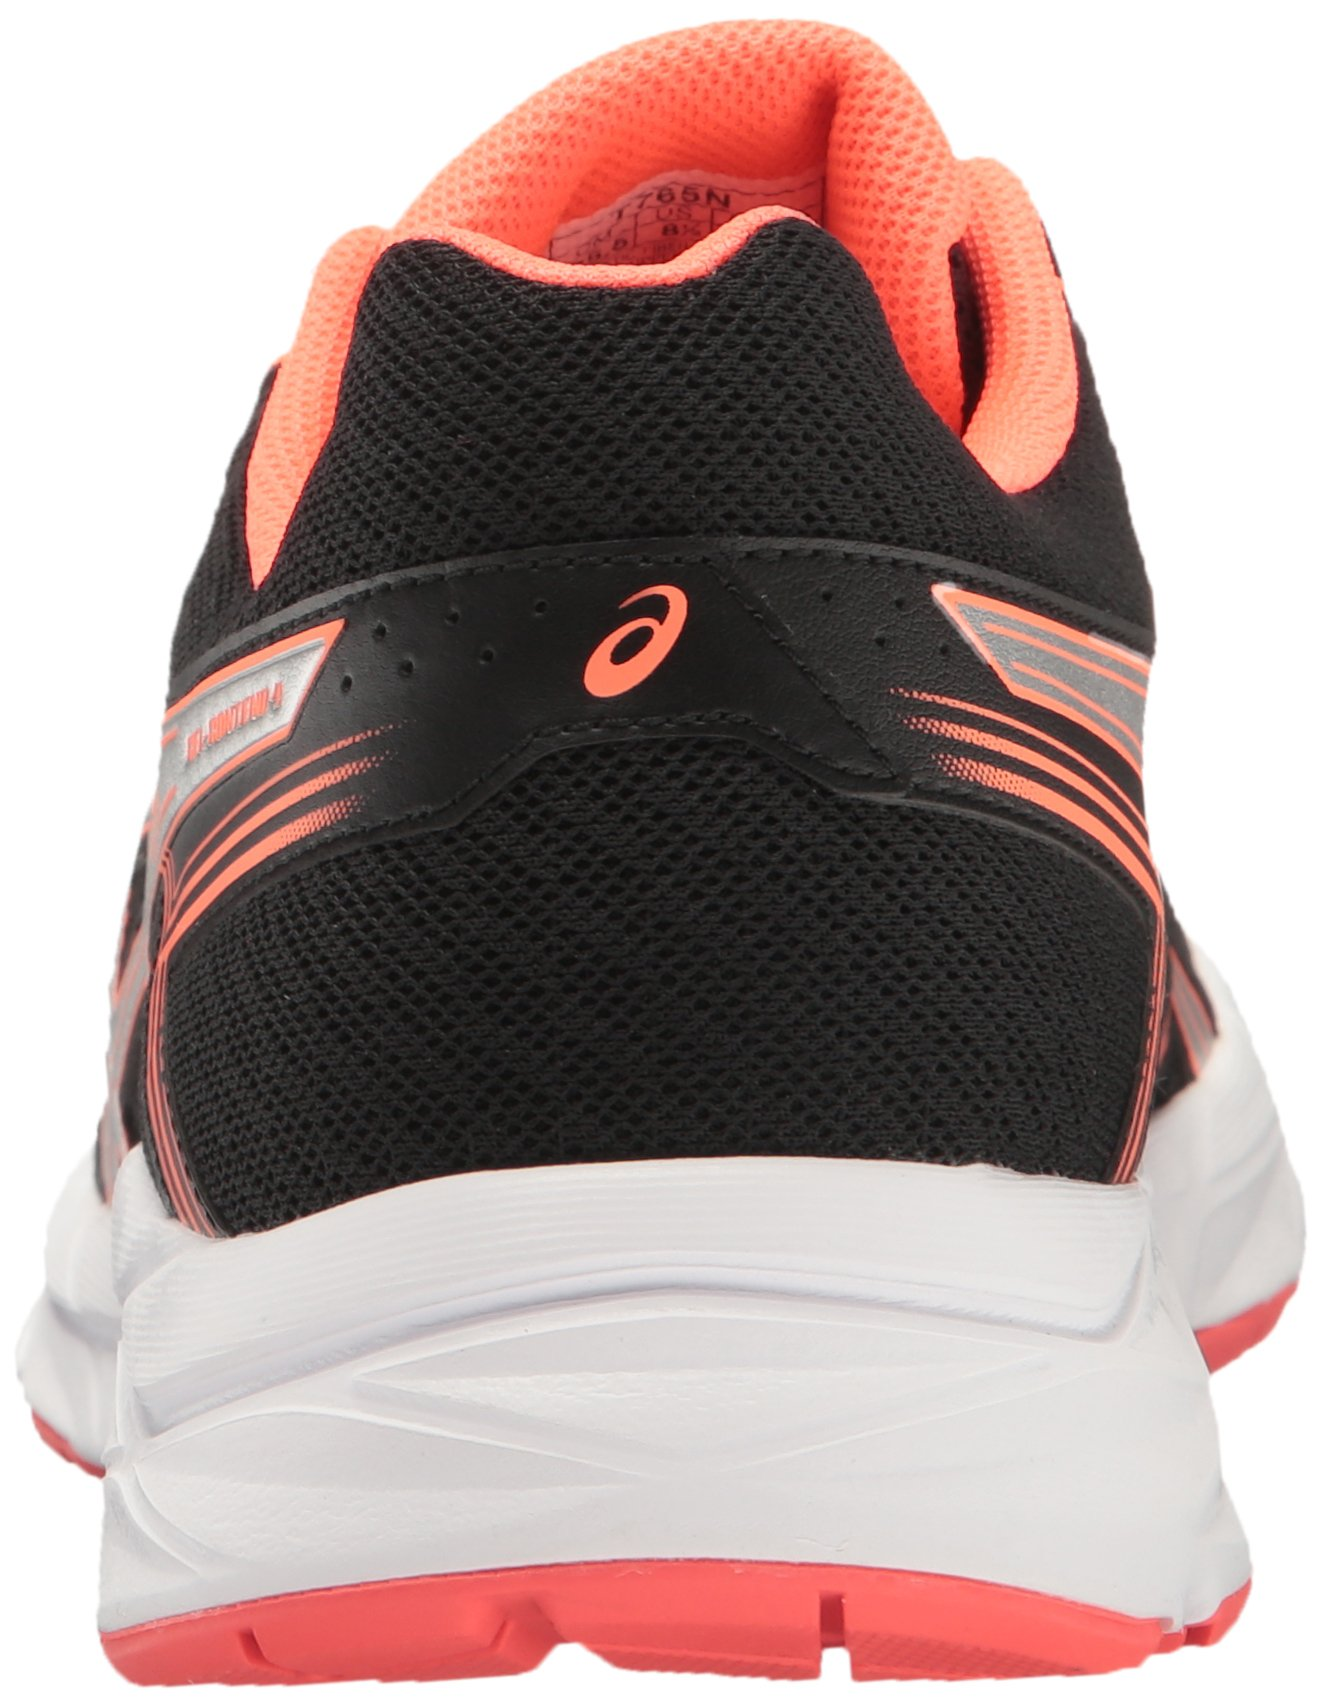 ASICS Women's Gel-Contend 4 Running Shoe, Black/Silver/Flash Coral, 5 M US by ASICS (Image #2)